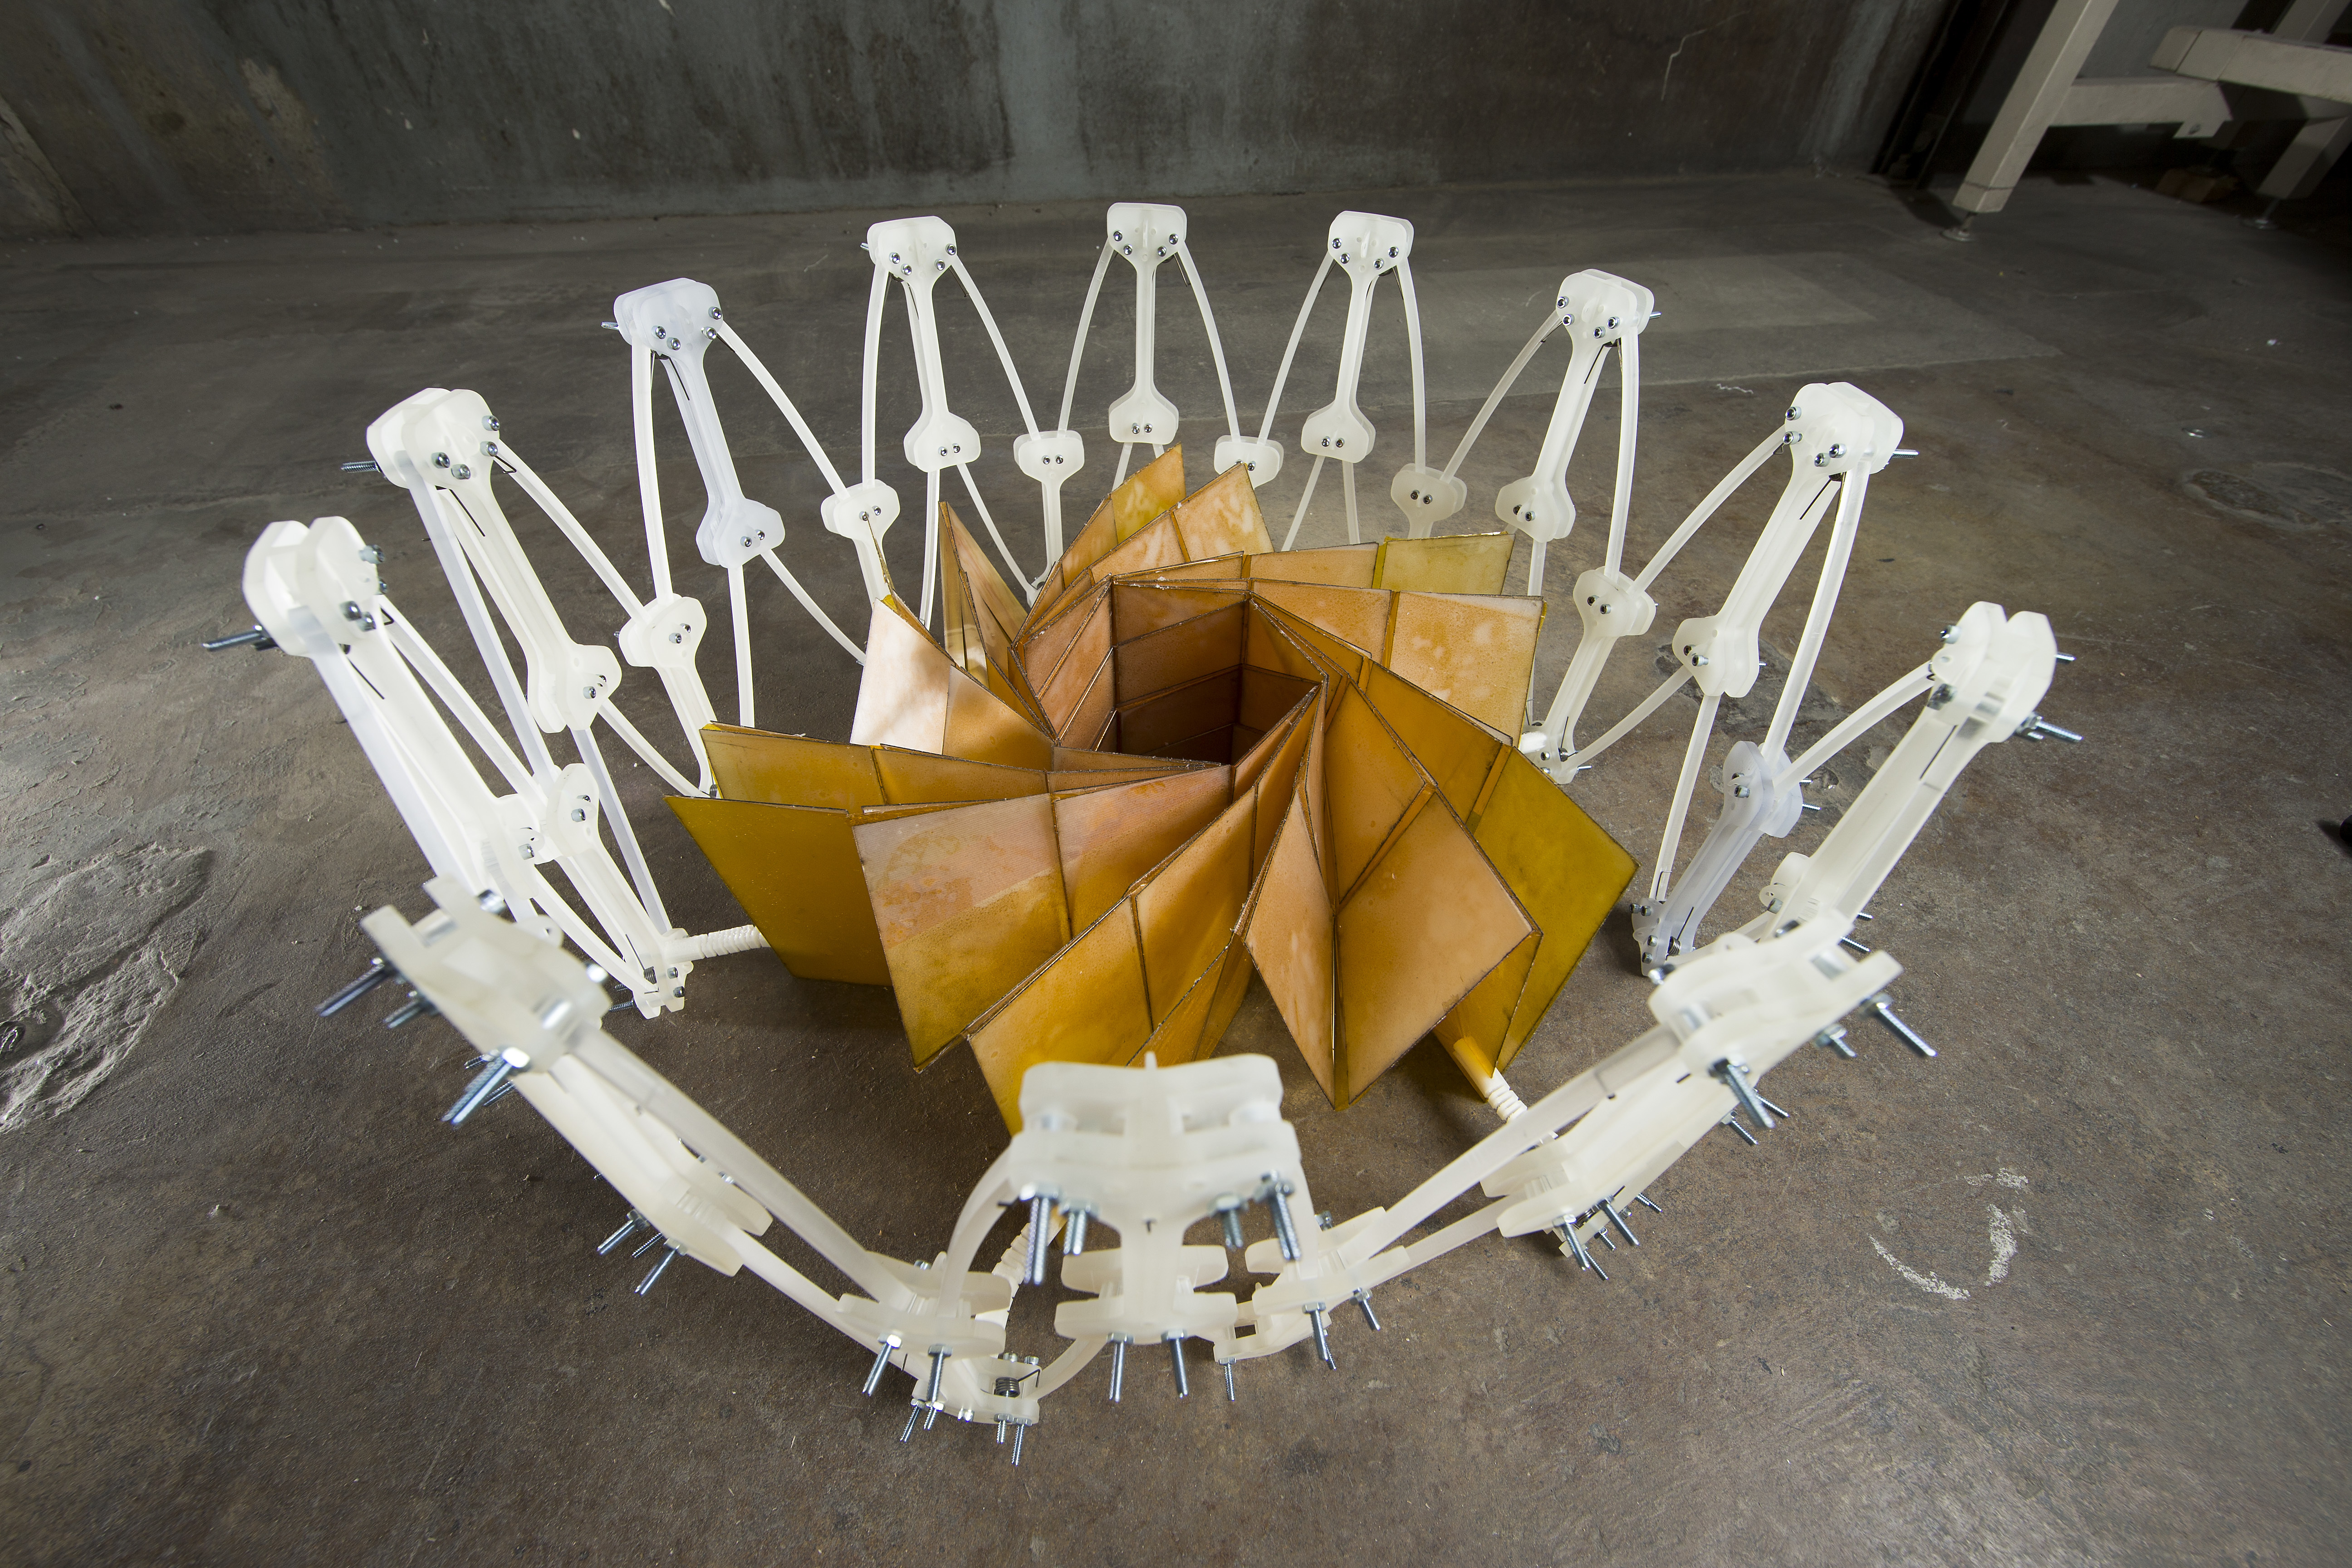 In 2014, NASA and Brigham Young University researchers teamed up to make an origami solar panel that can be folded up used on small satellites.